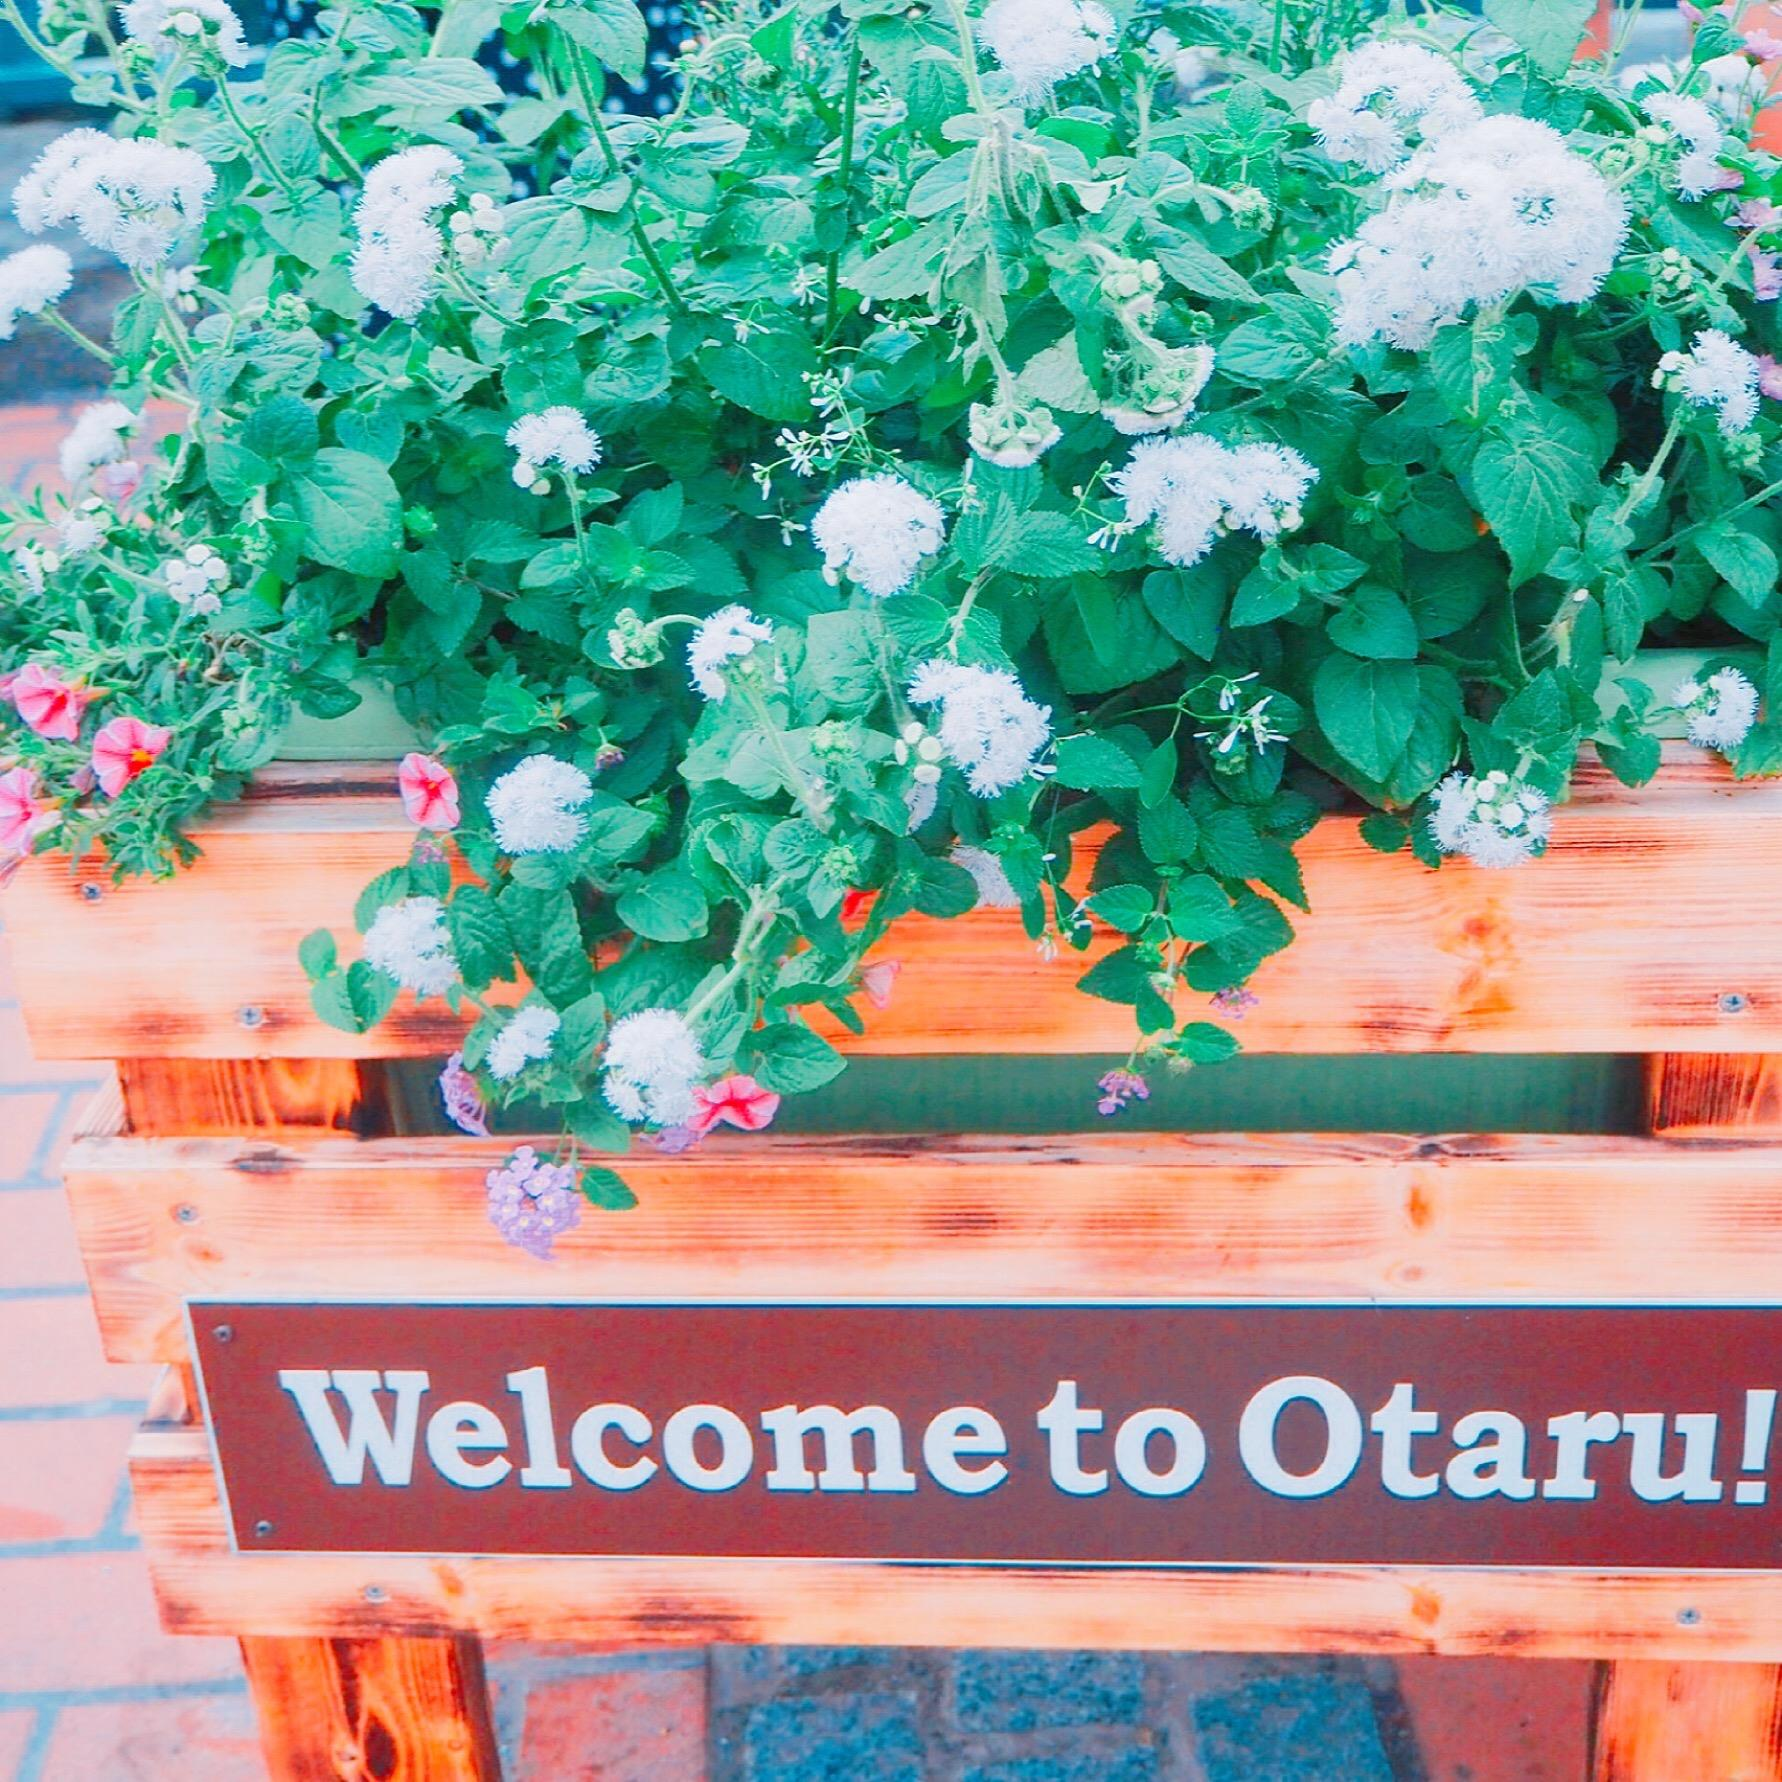 welcome to otaru